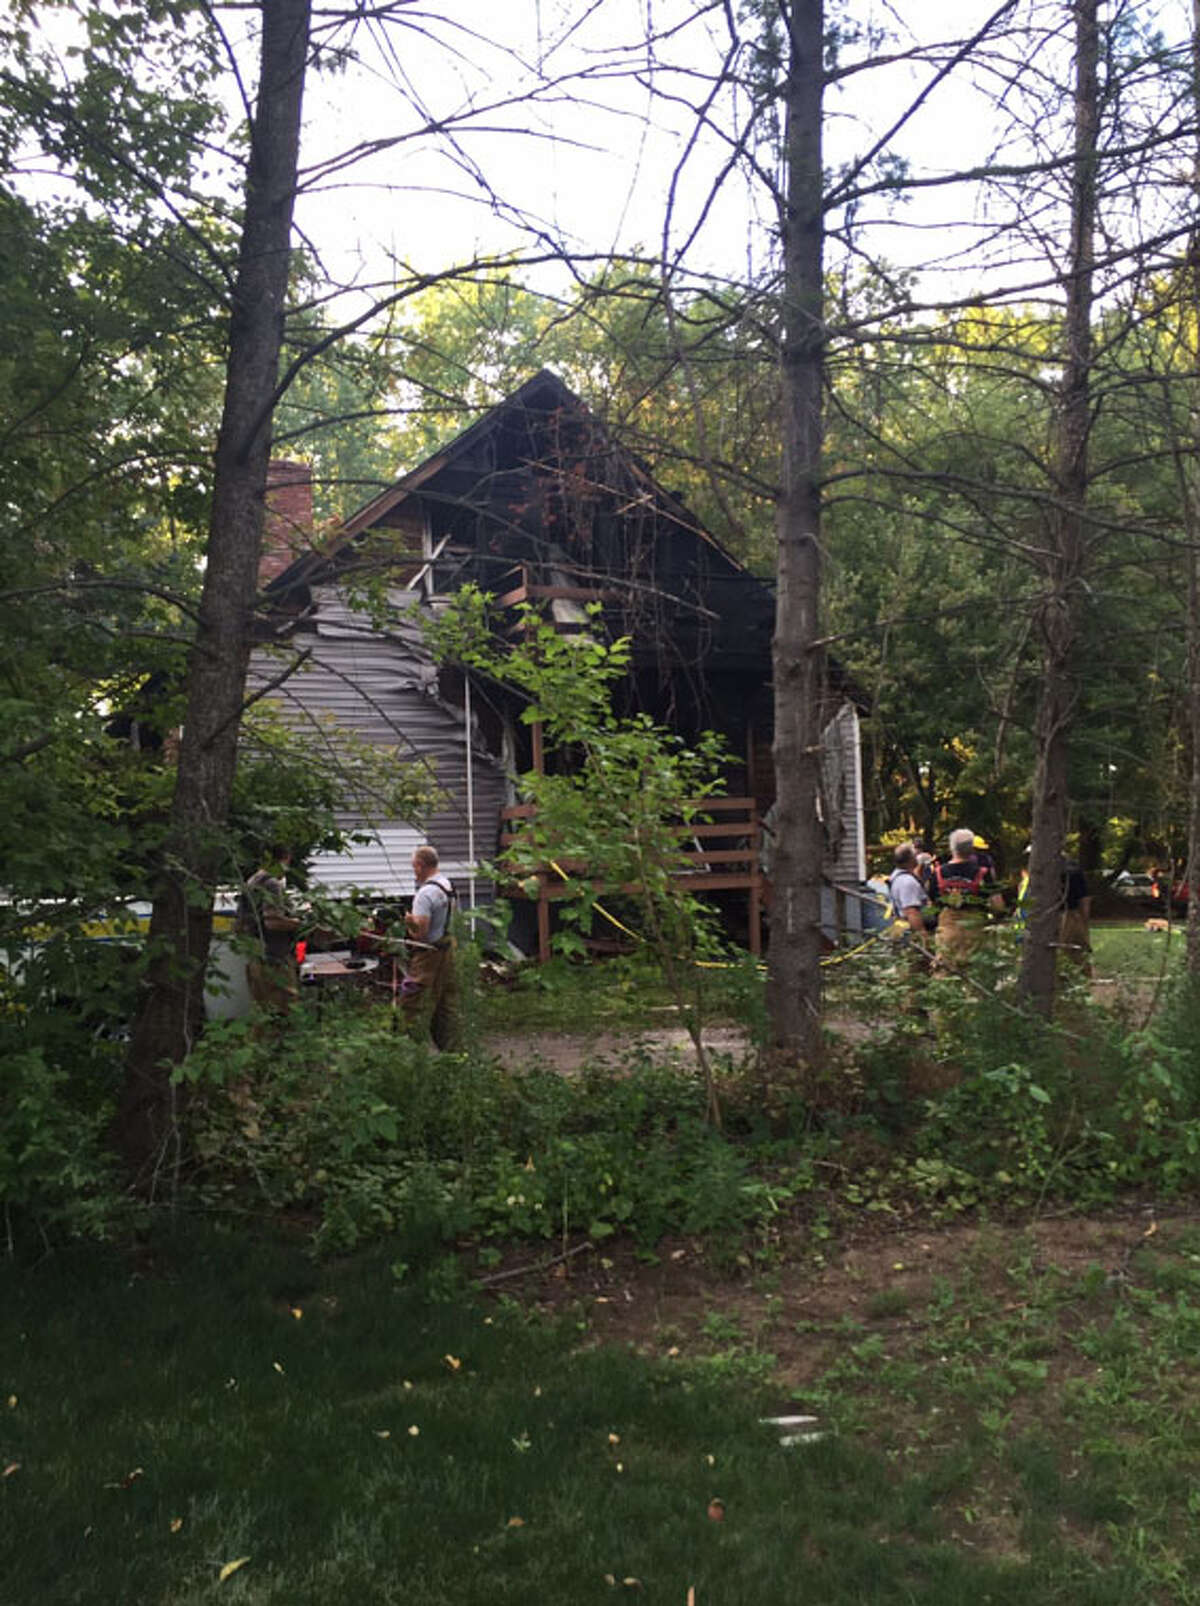 One person was killed in a fire Sunday, July 17, 2016, on Carmen Road in Guilderland, according to Guilderland Fire Chief Scott Jill (Amanda Fries / Times Union)